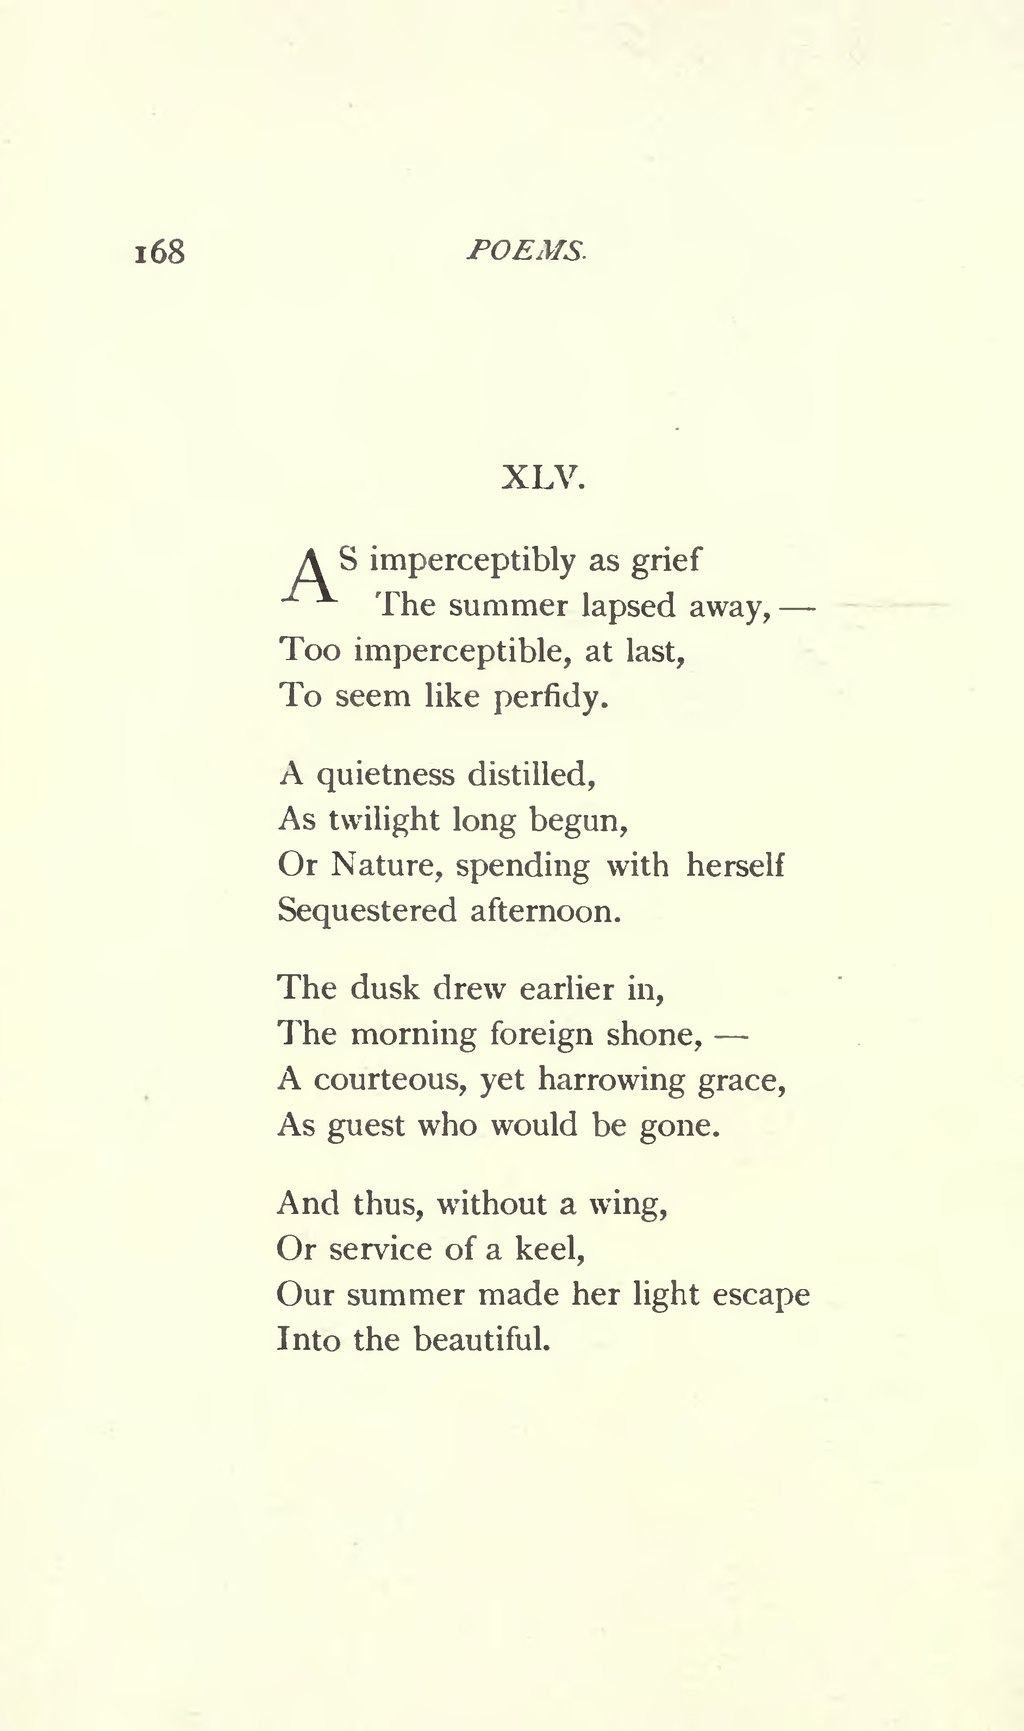 as imperceptibly as grief emily dickinson